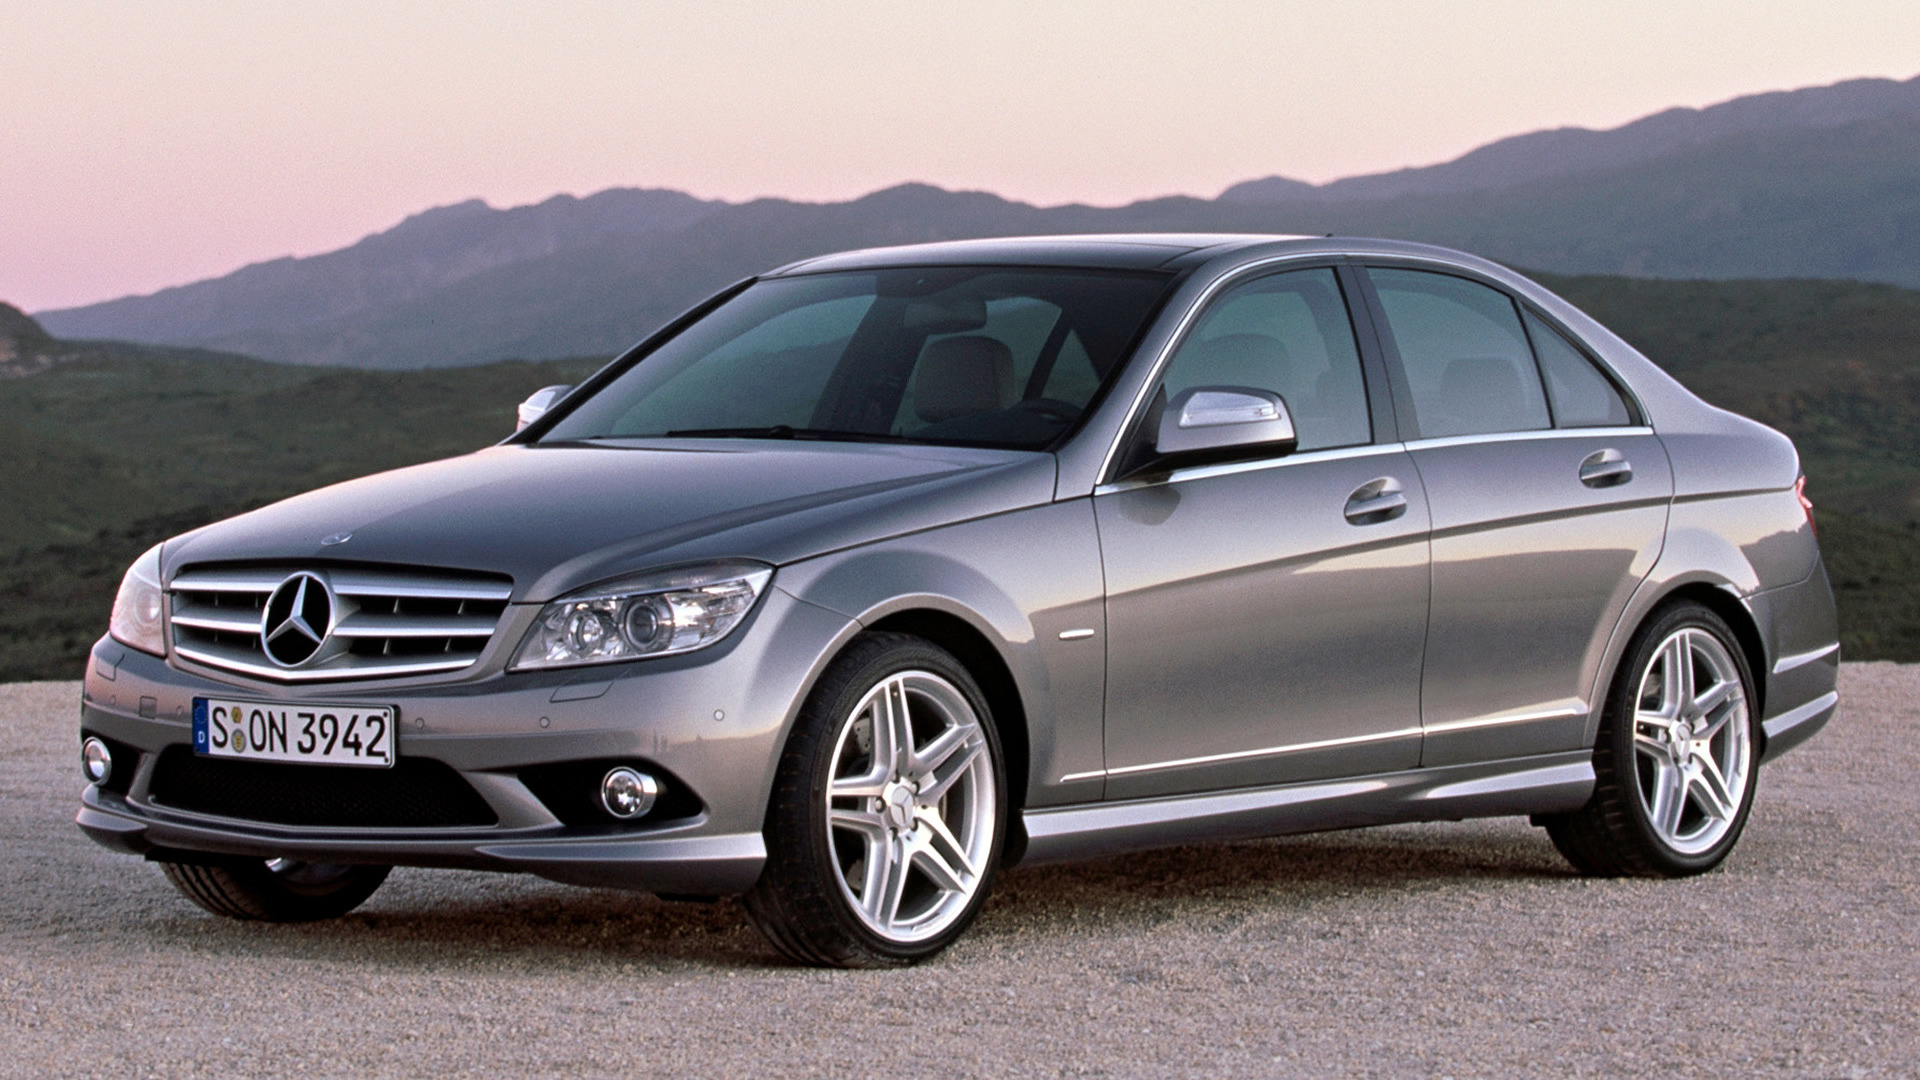 diesel c class vehicles to mercedes breaking coupe details benz cclass mercedesbenz door automatic